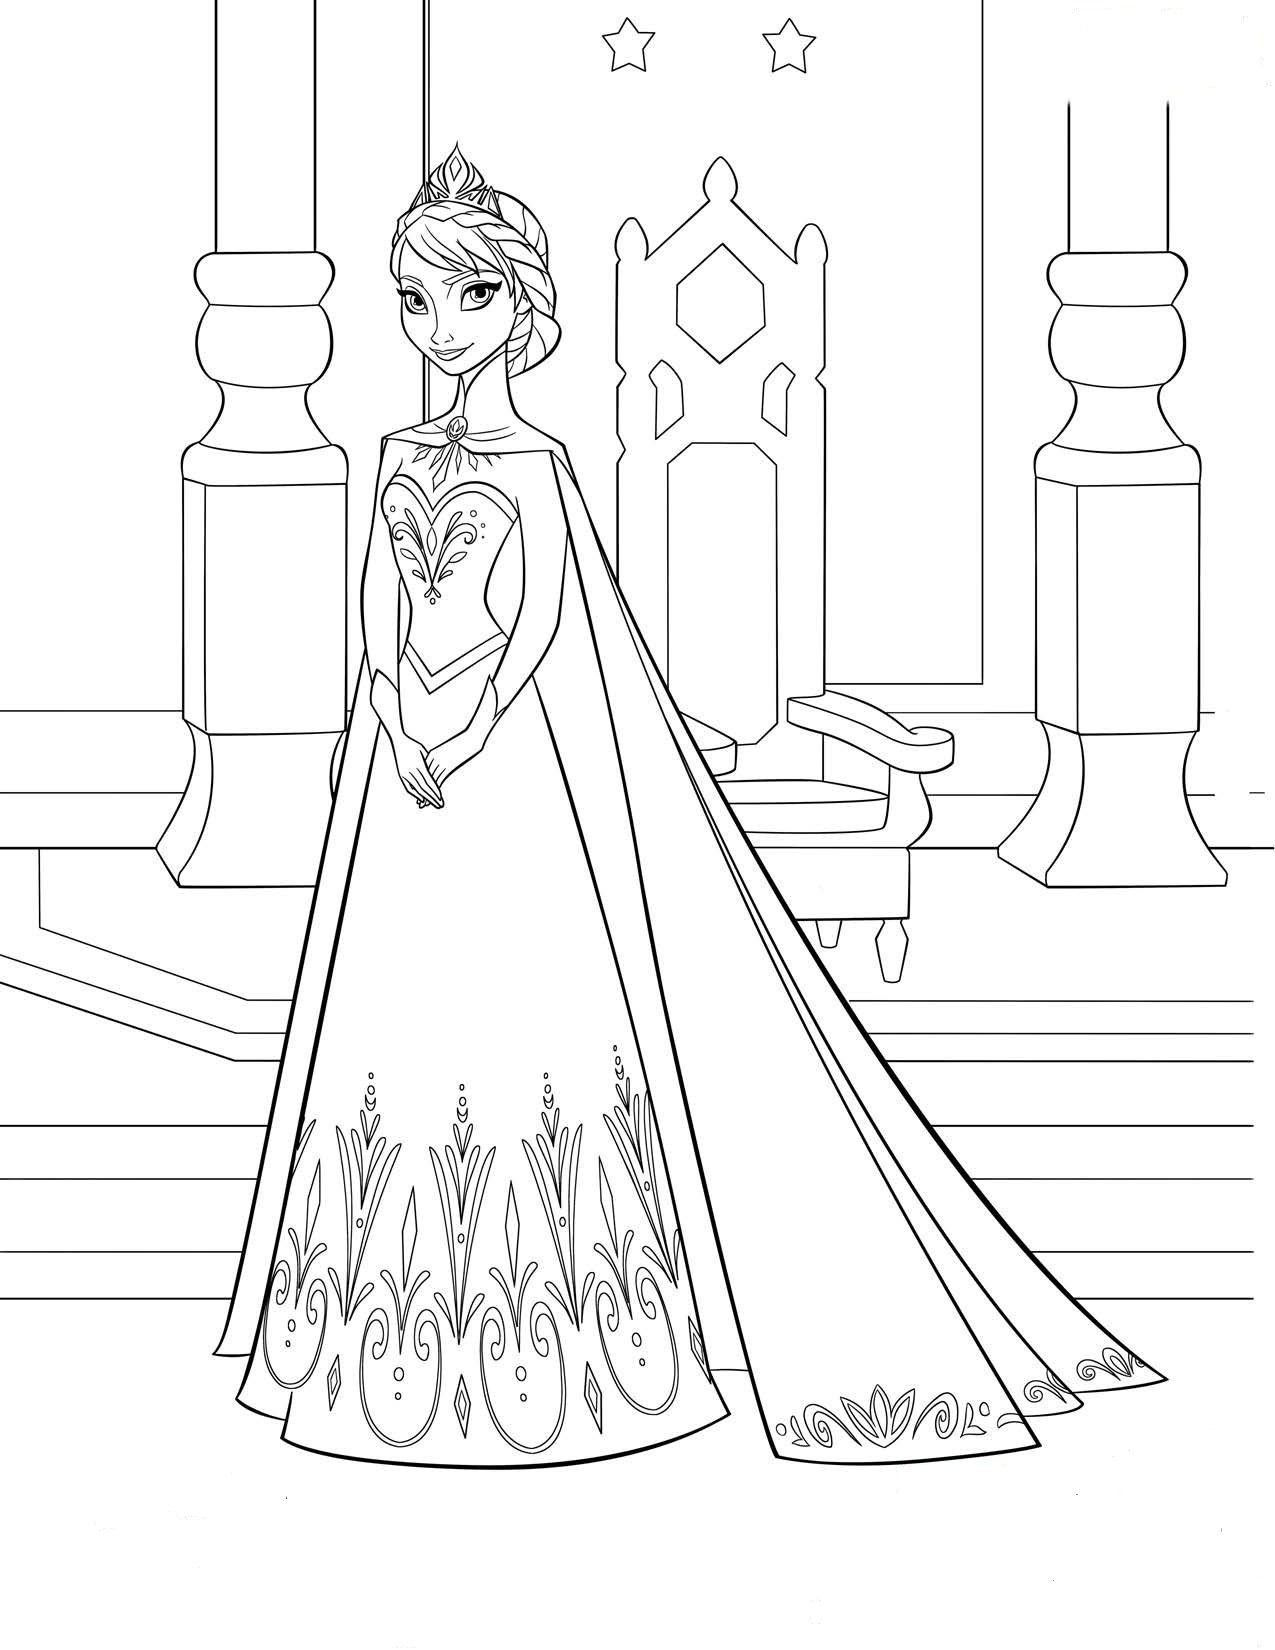 Printable Disney Frozen Coloring Pages Coloring Pages Disney Frozen Printables Coloring And In 2020 Frozen Coloring Pages Elsa Coloring Pages Elsa Coloring